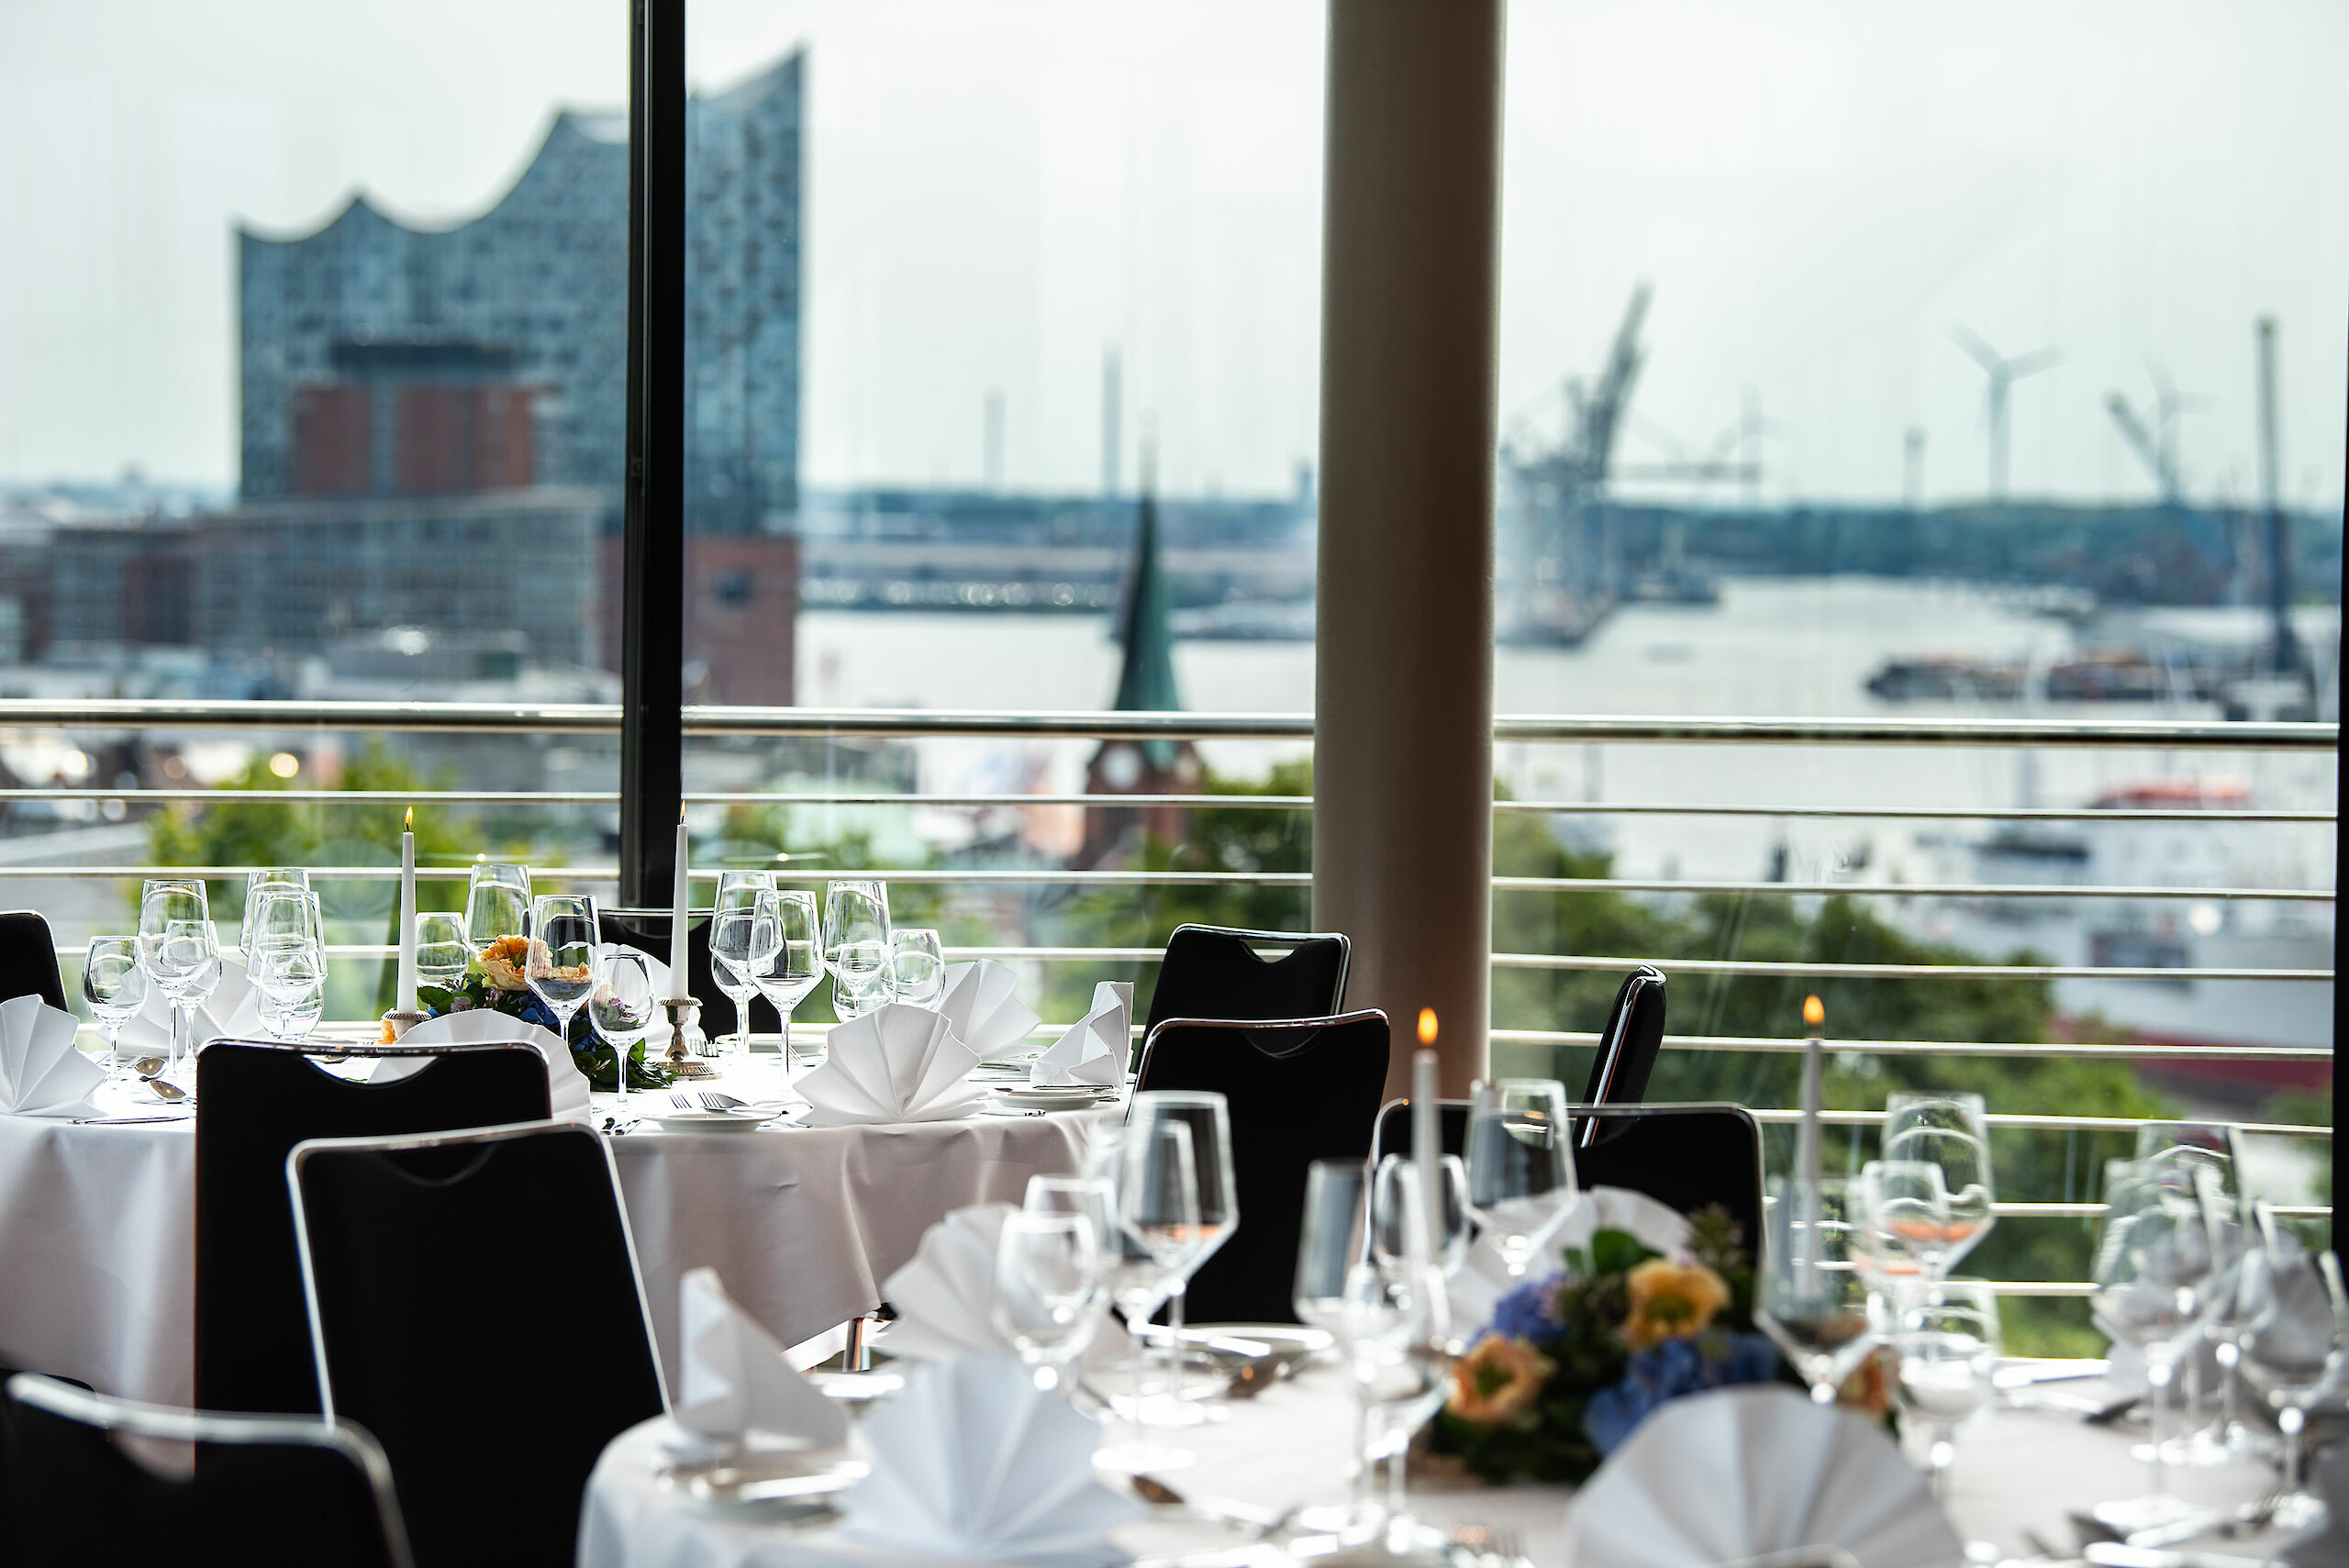 A festively decorated table for a special occasion with a view of the Elbphilharmonie